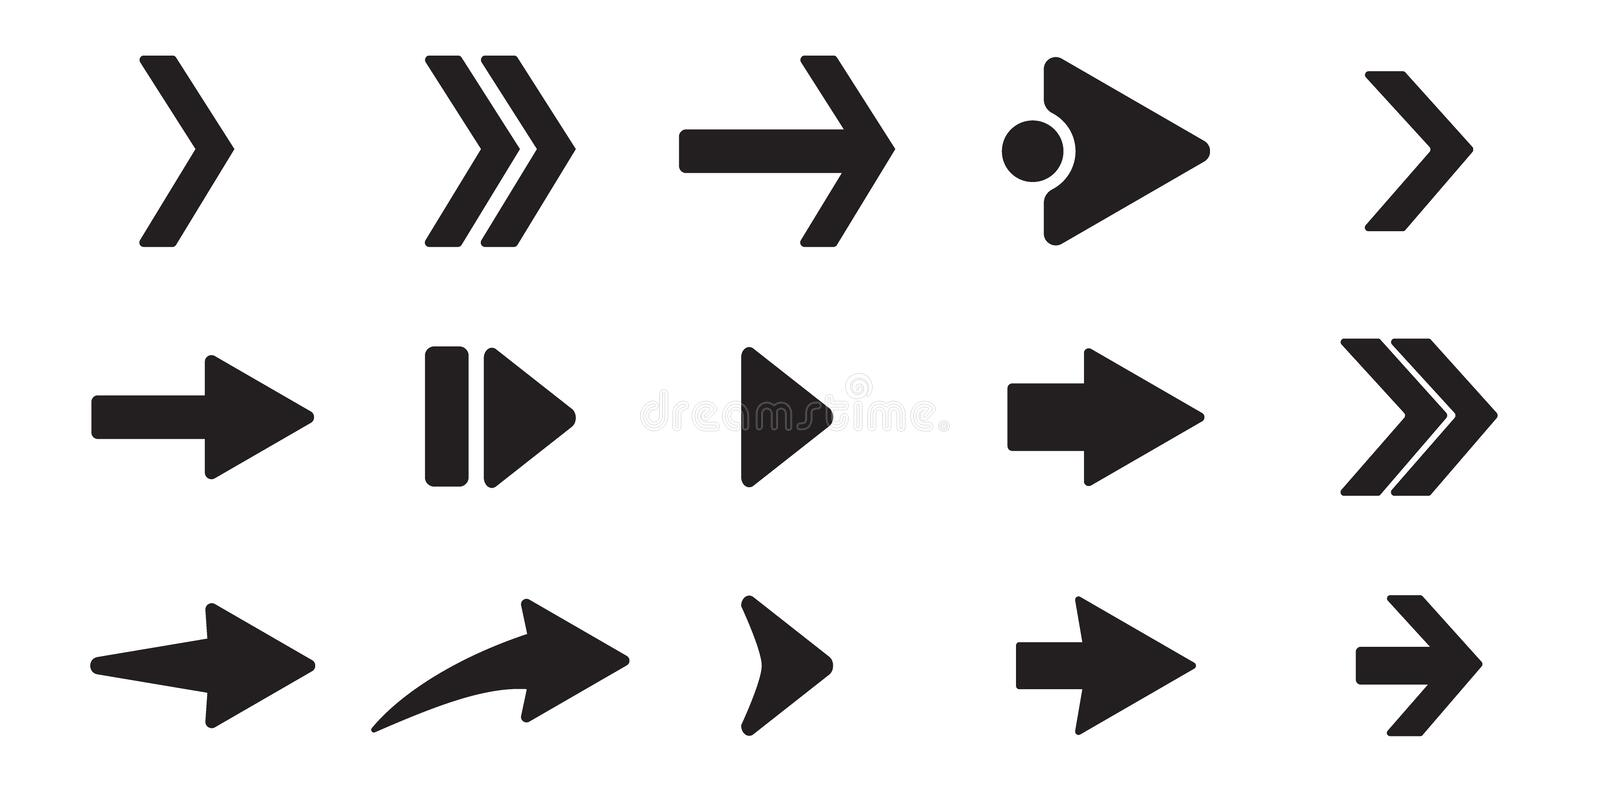 Black arrow icons set. Different shape concept, internet button isolated on white background, graphic design. Flat arrow signs. stock illustration